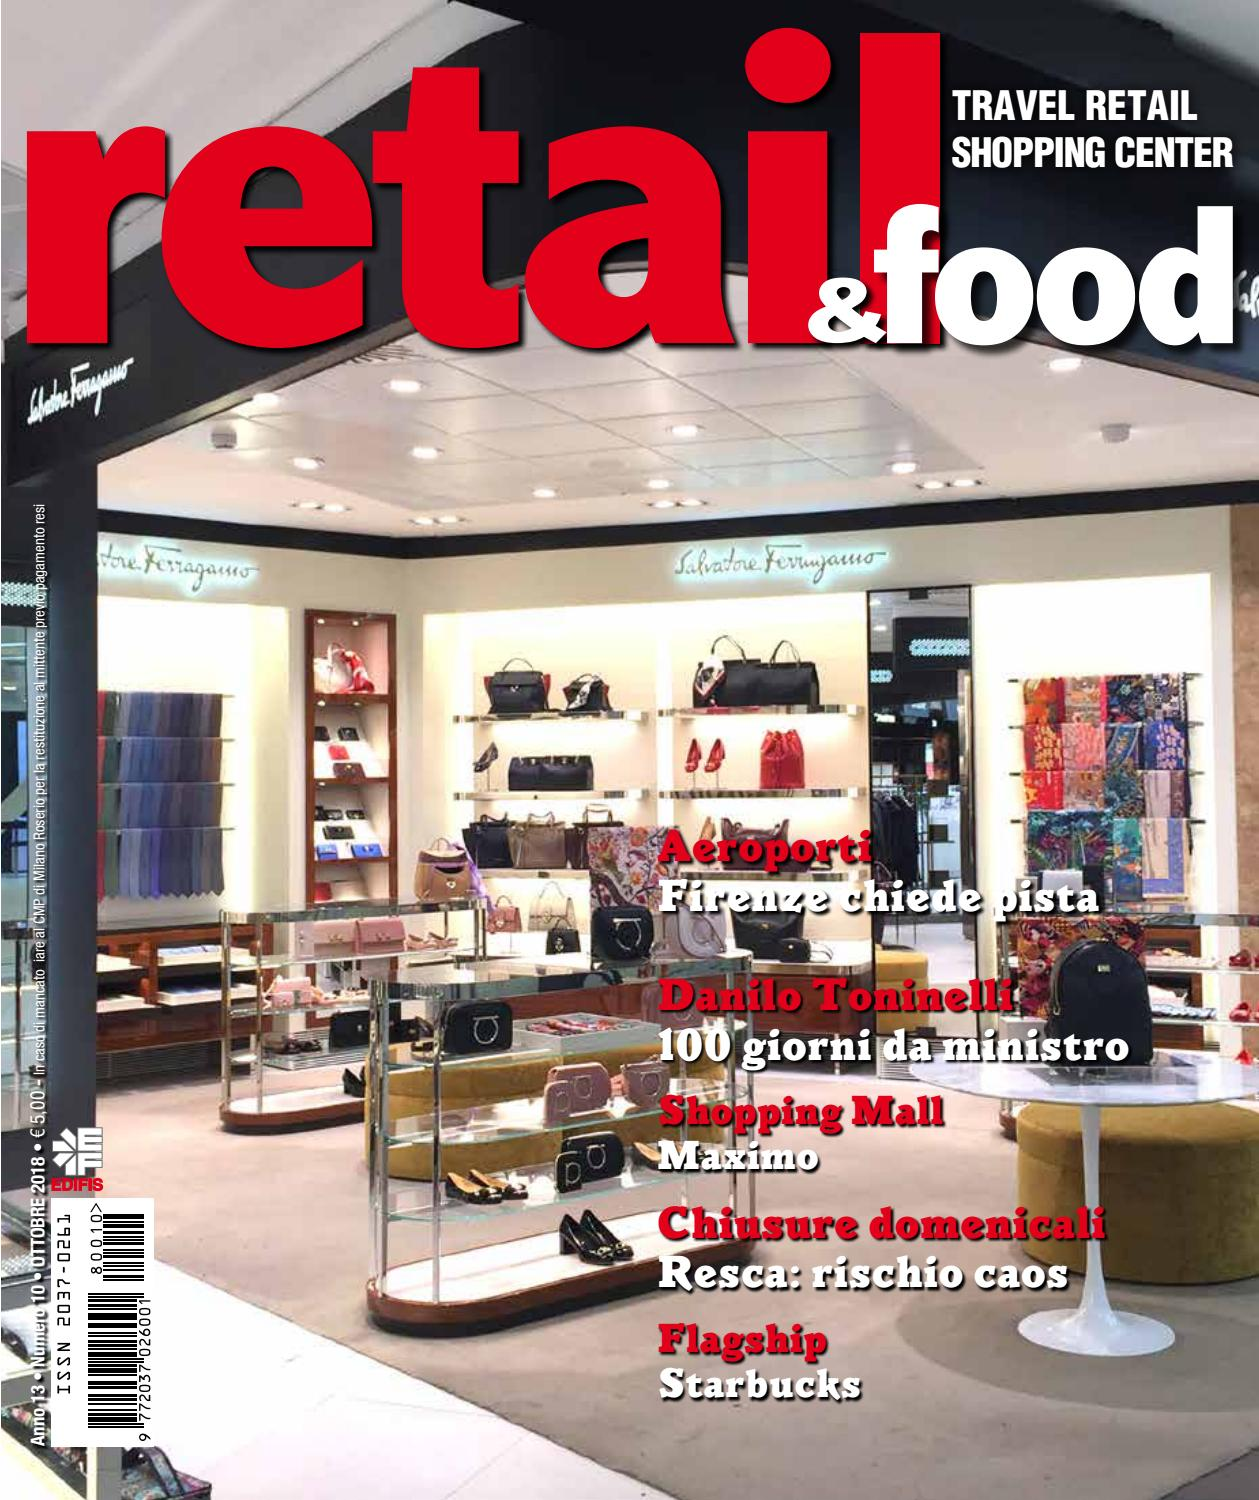 8e954d5748d6e retail food 10 2018 by Edifis - issuu